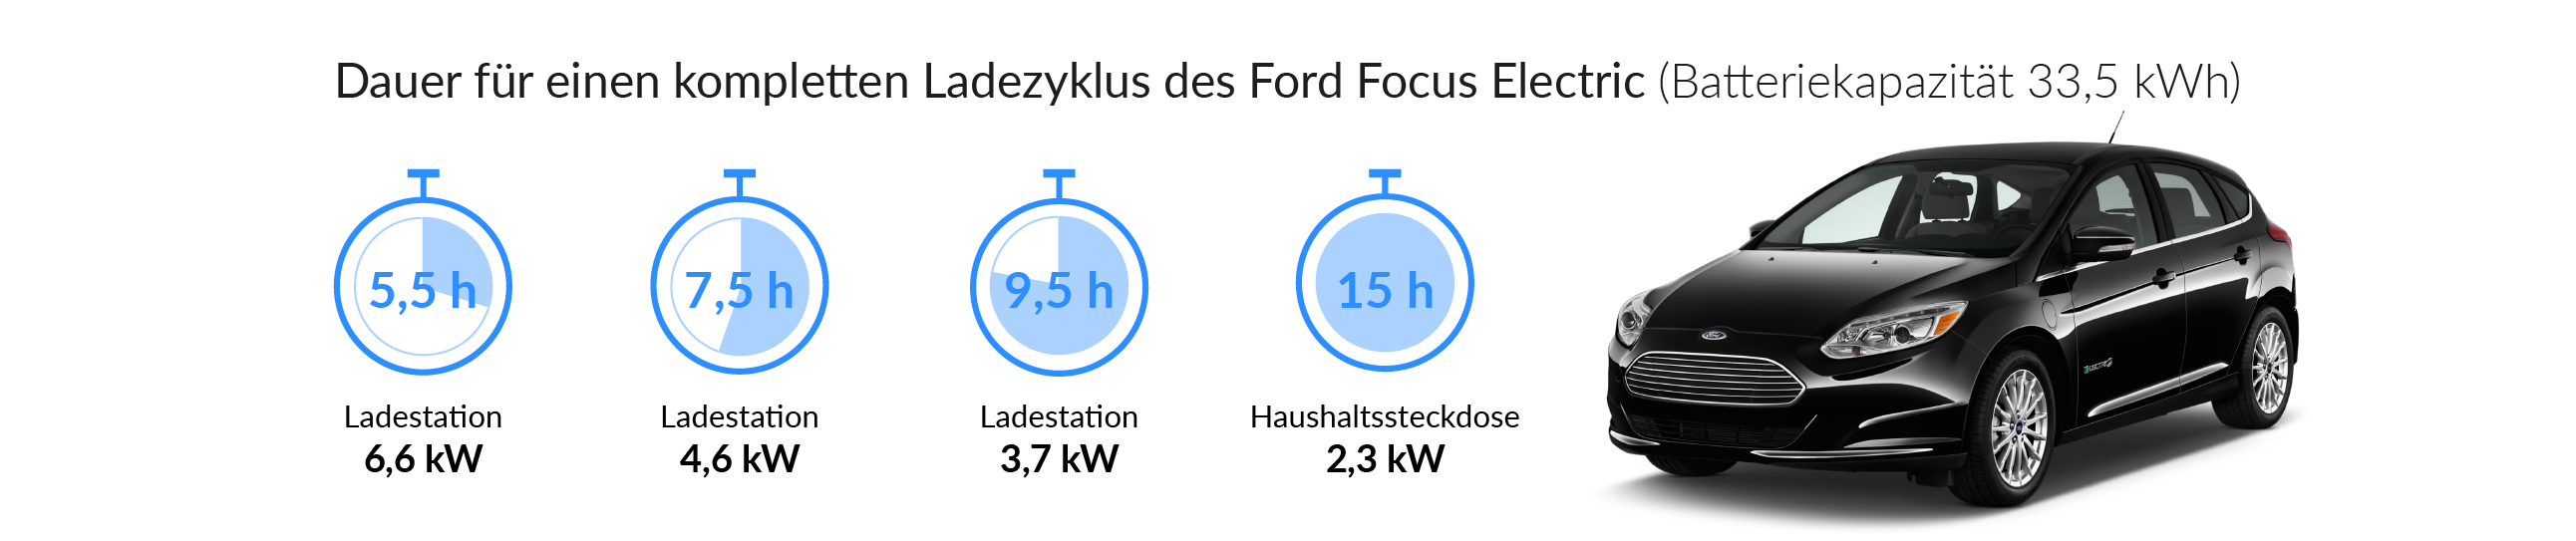 Ladezeiten des Ford Focus Electric